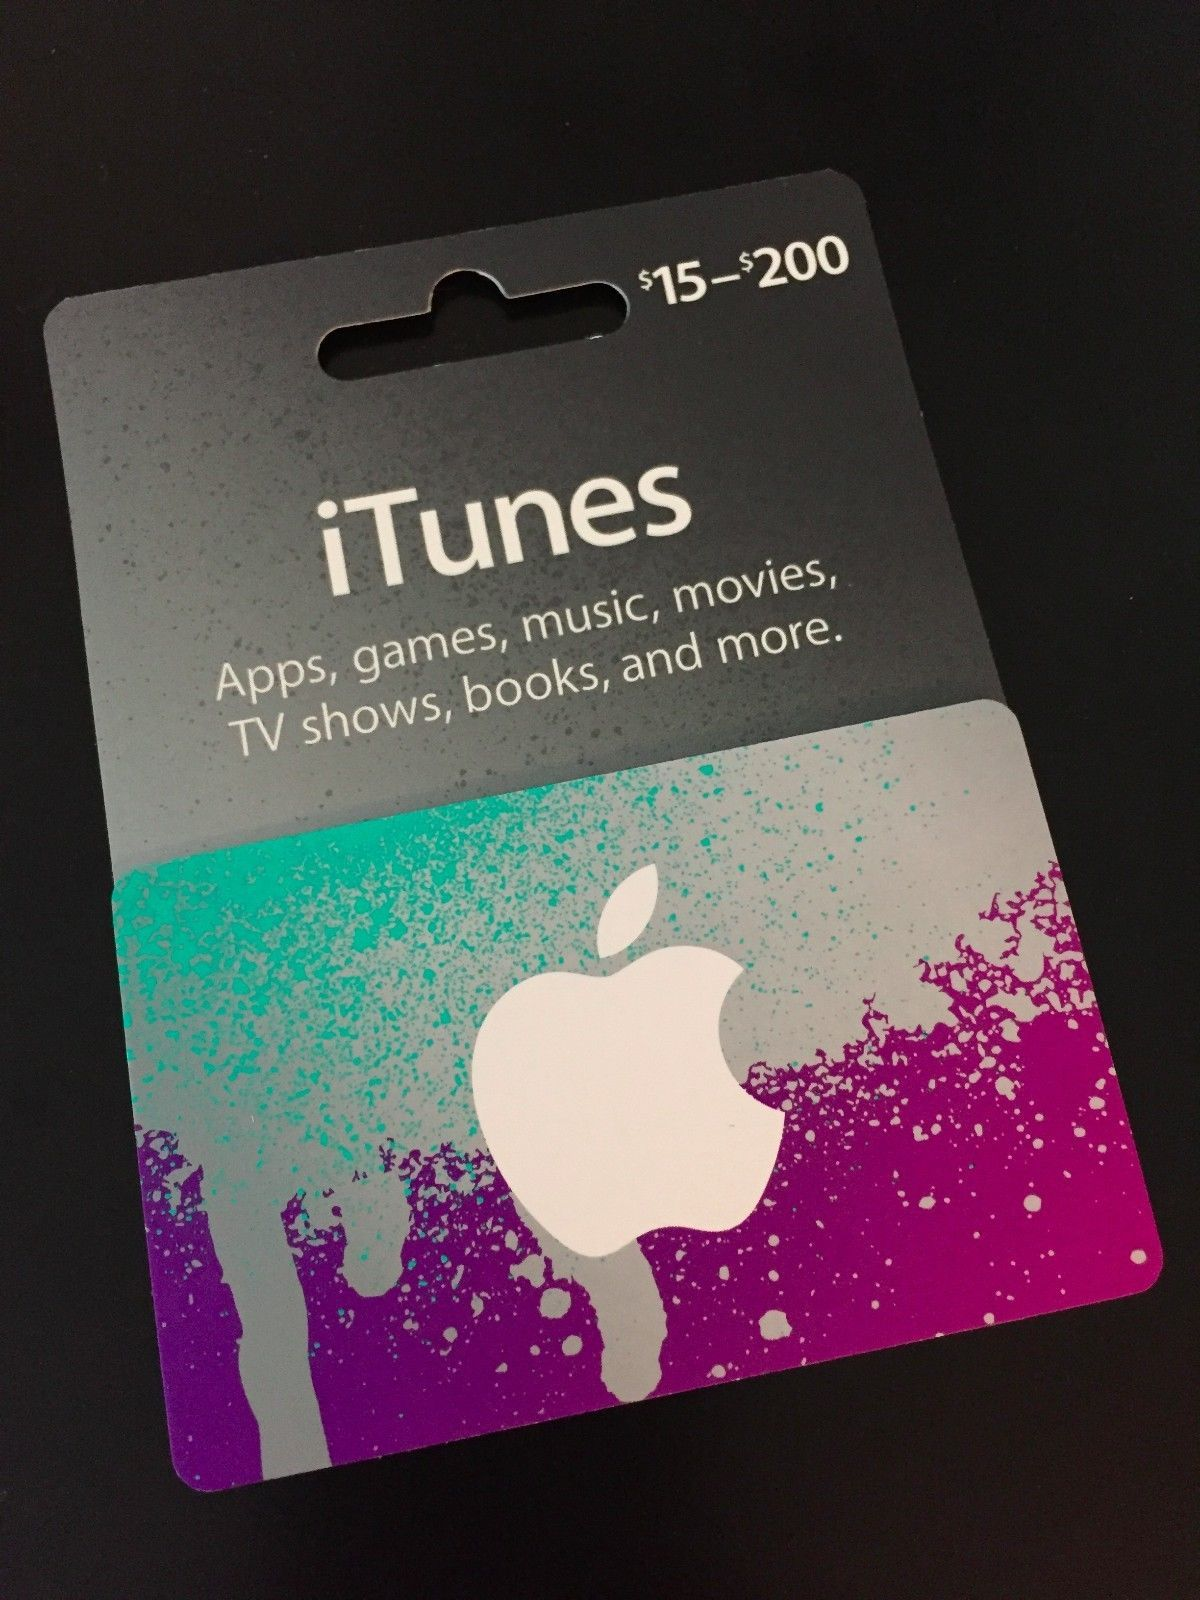 New Itunes Gift Card 50 Dollars Http Searchpromocodes Club New Itunes Gift Card 50 Dollars 2 Itunes Gift Cards Gift Card Cards